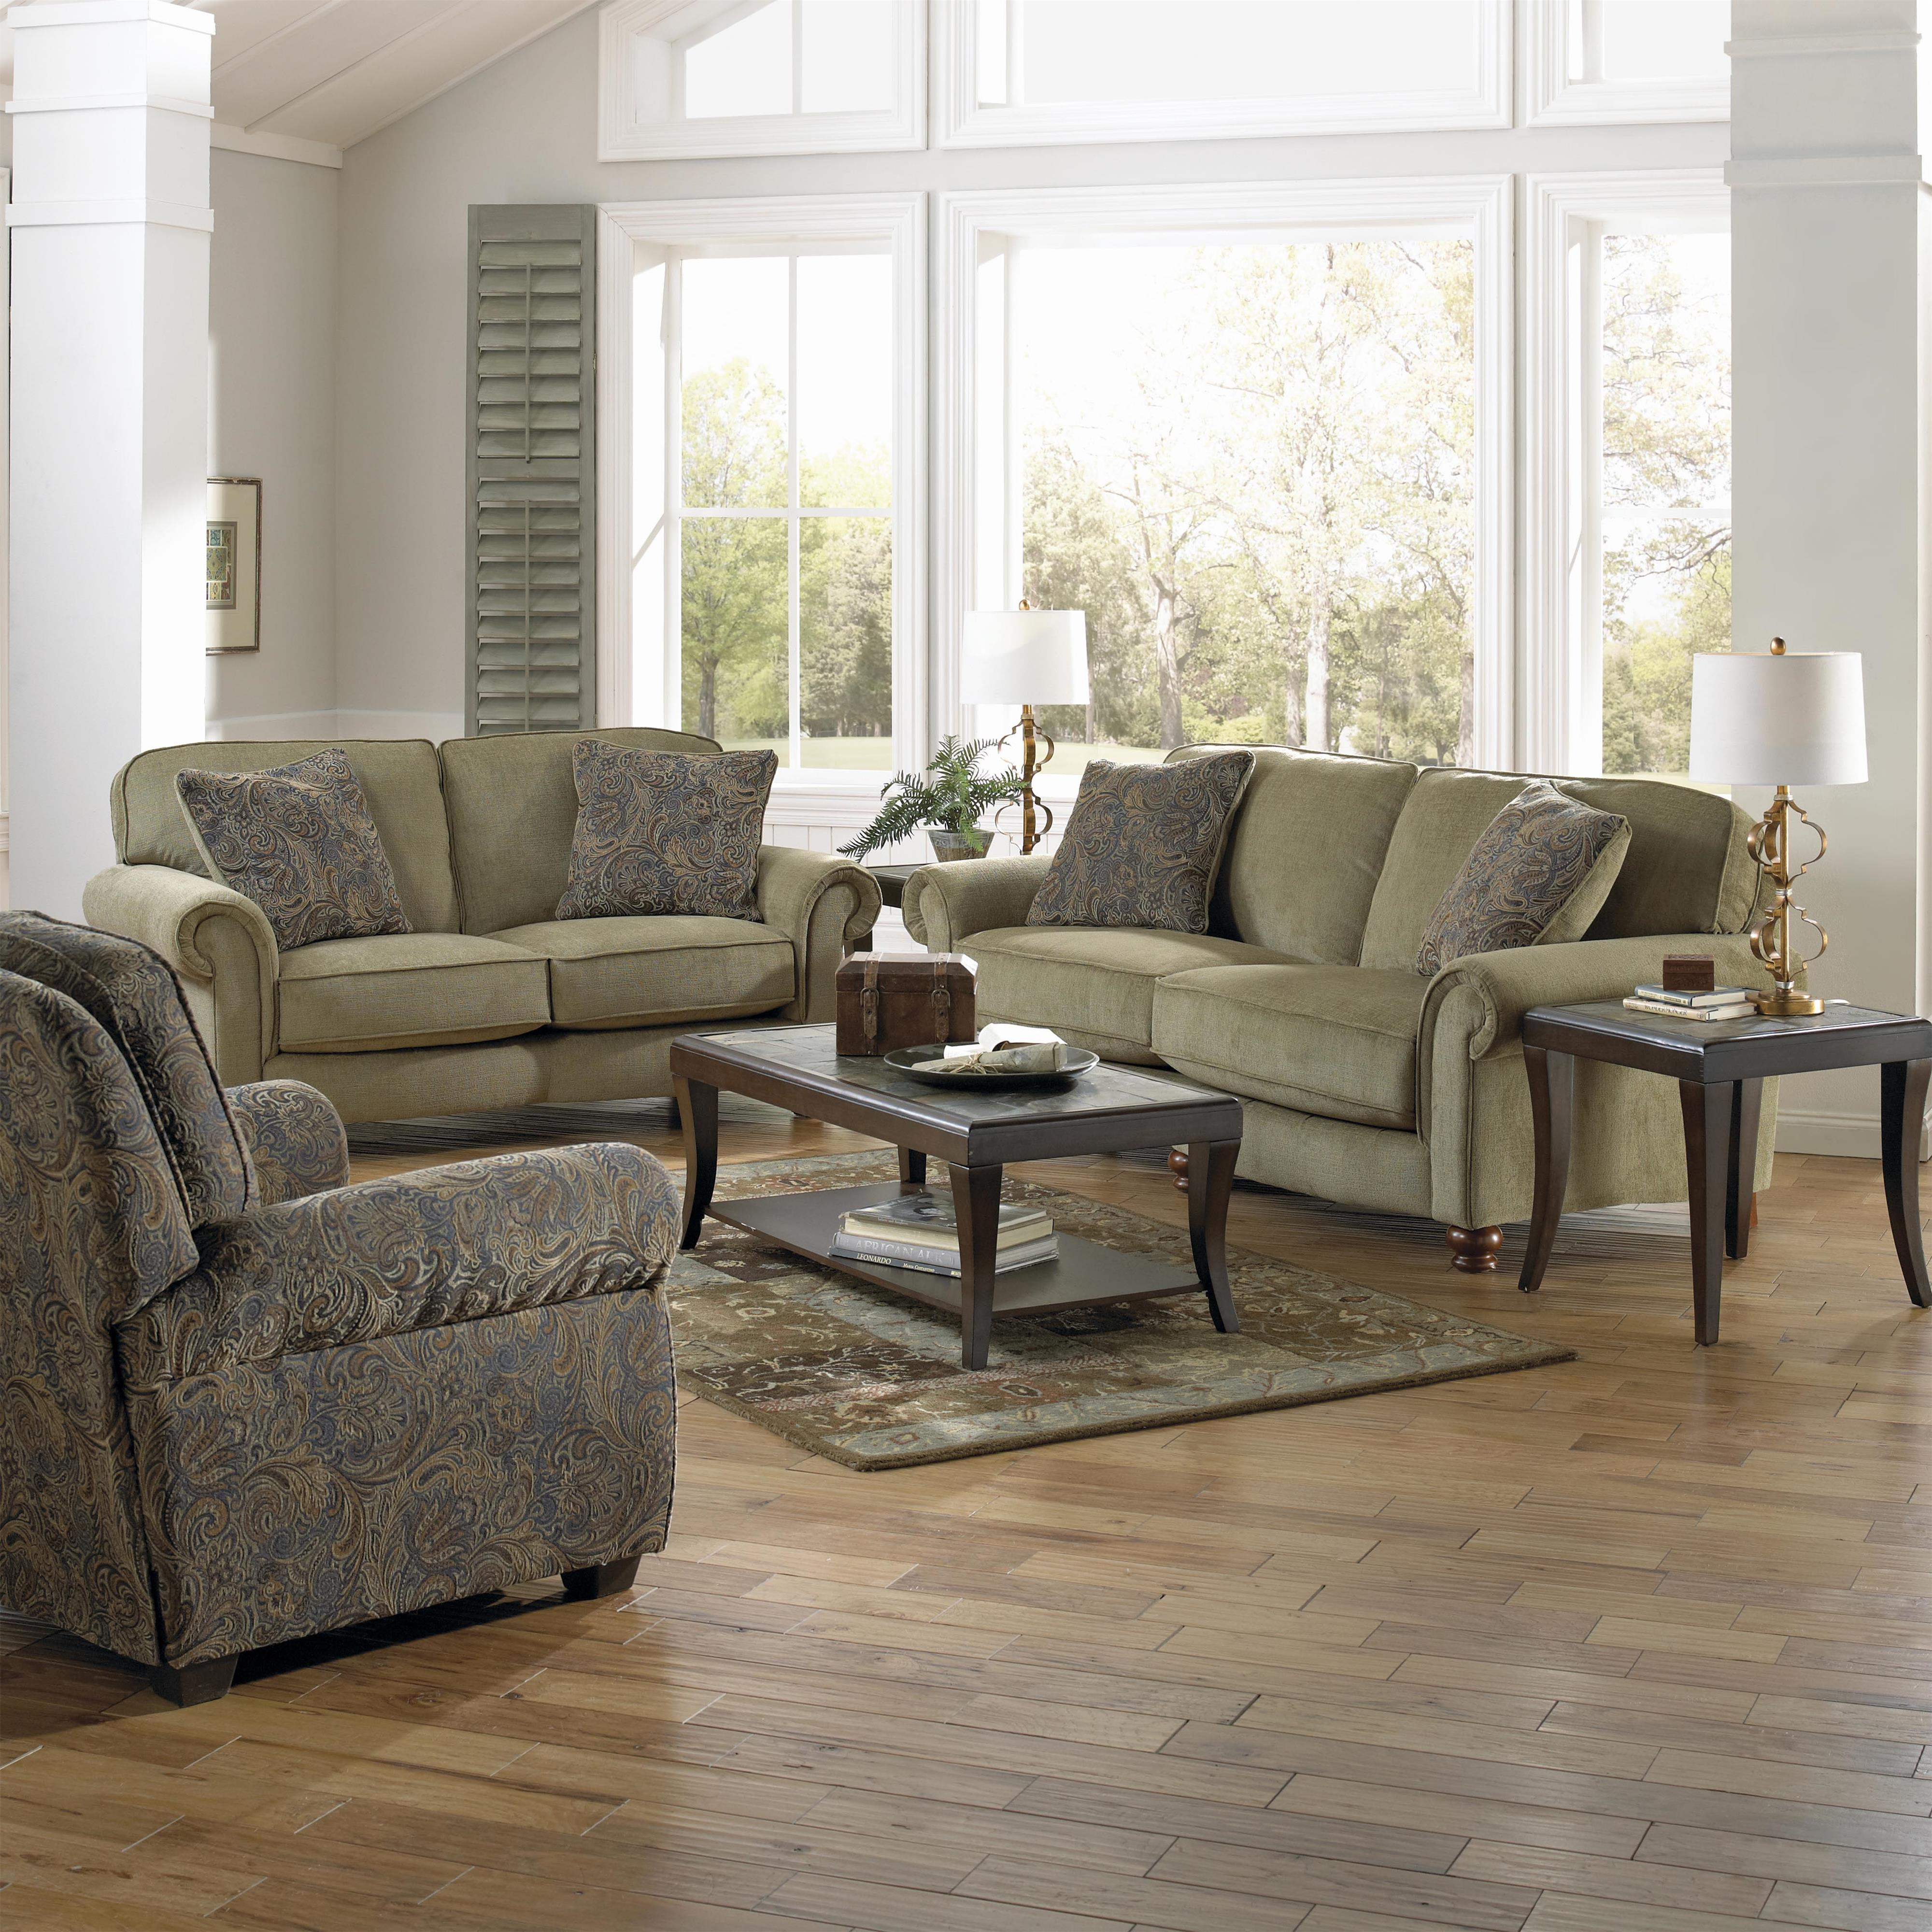 Jackson Furniture Downing Stationary Living Room Group - Item Number: 4384 Living Room Group 3